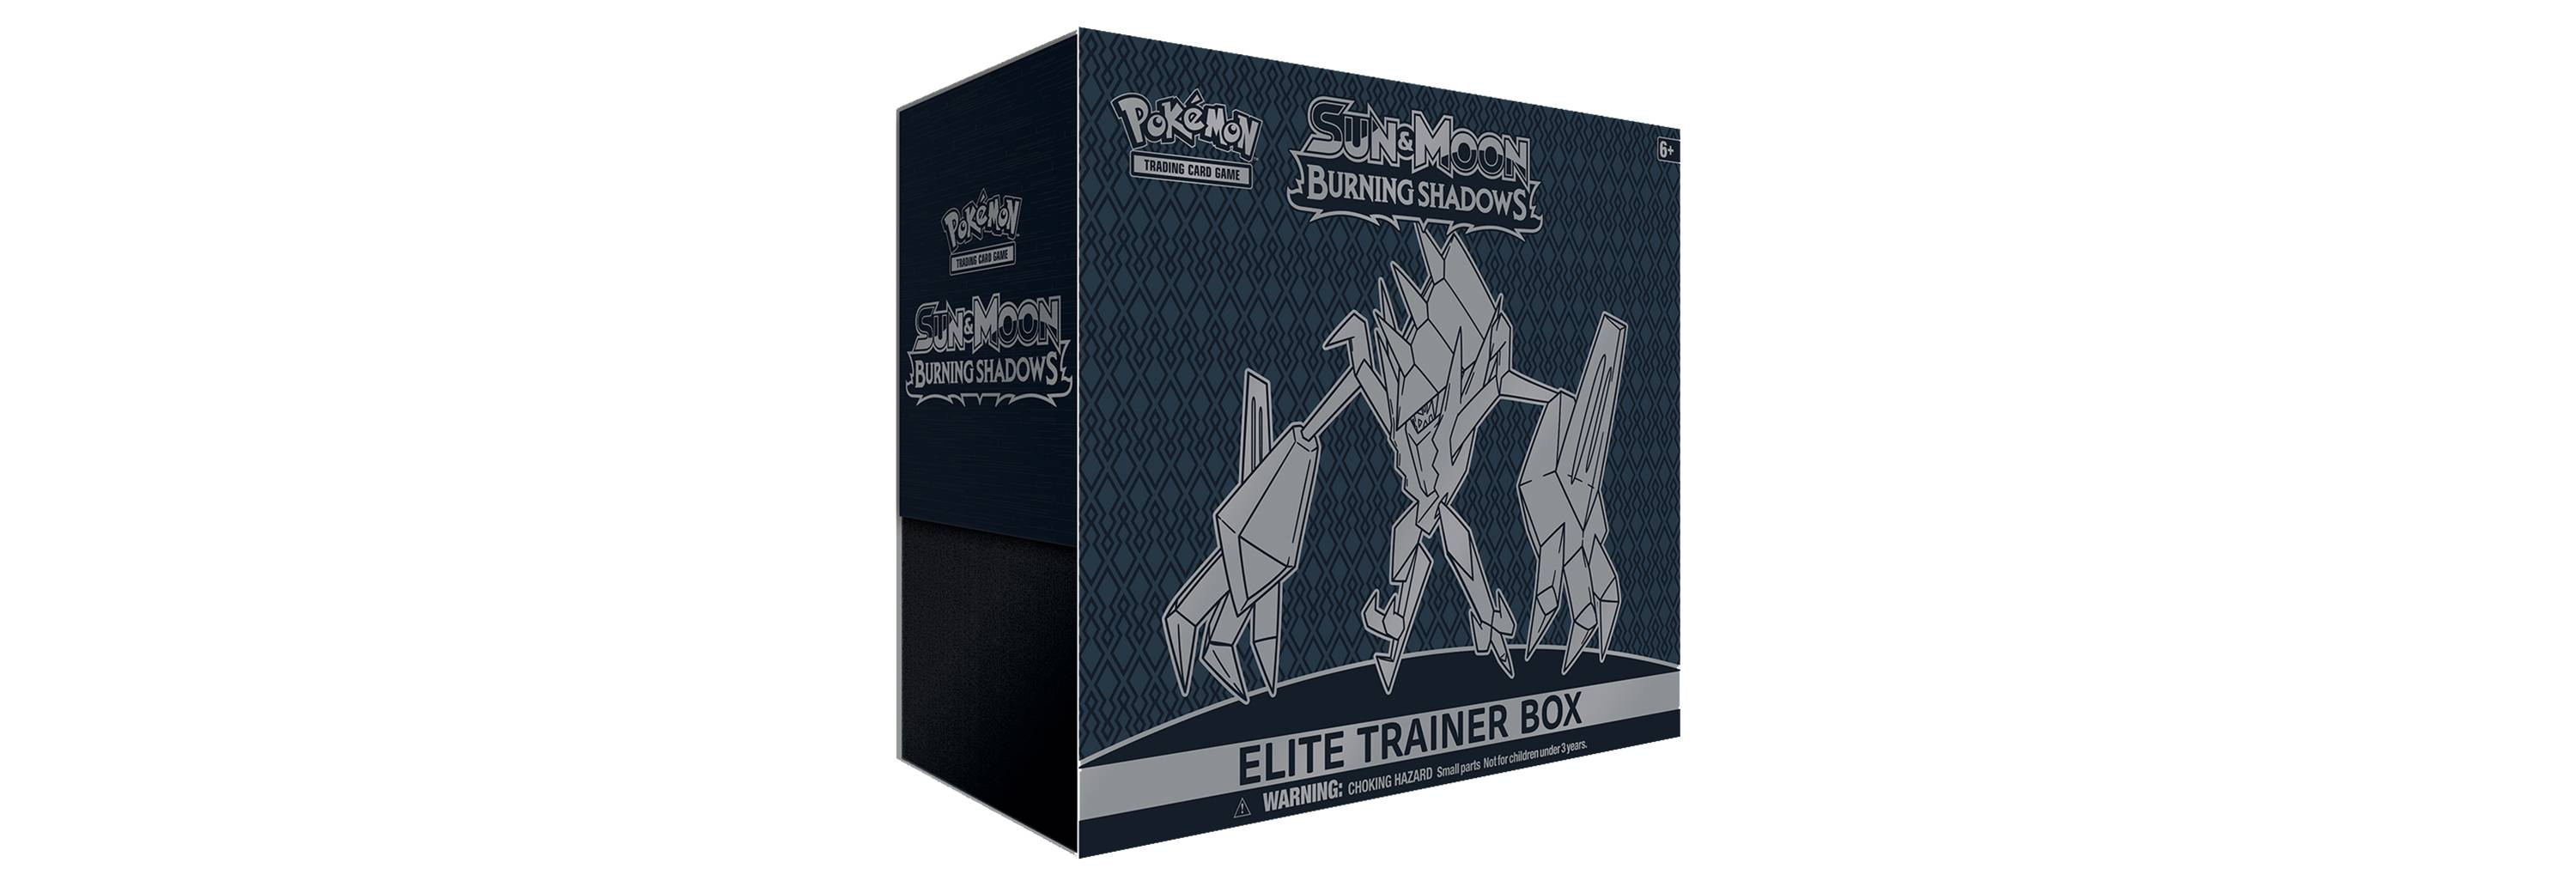 Pokemon Sun Moon Burning Shadows Trading Card Game Elite Trainer Box - $22.49 before tax, free shipping